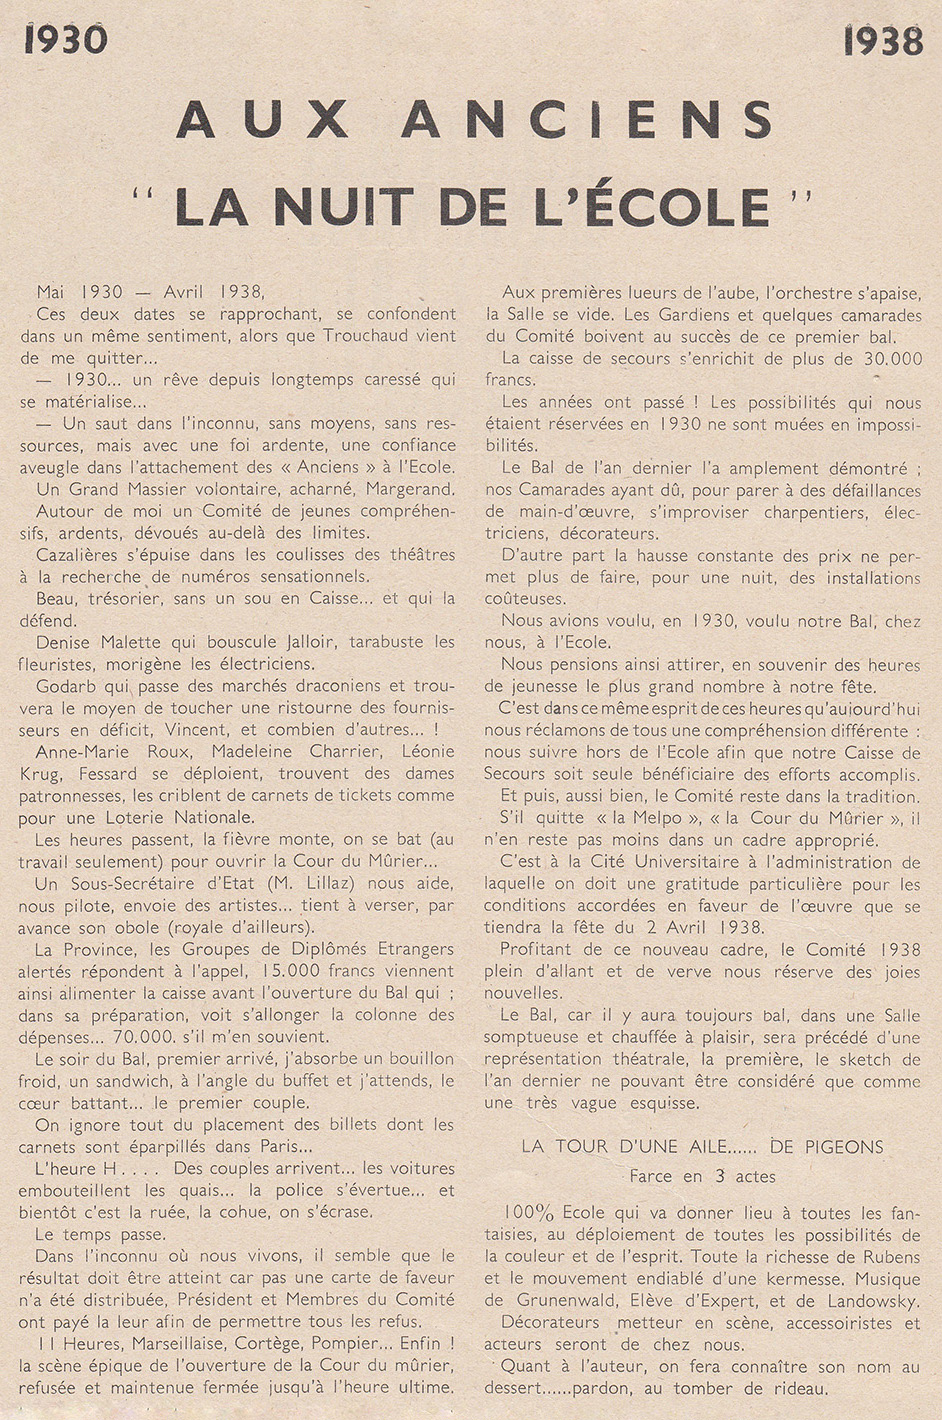 193803_Bulletin-GMBA_1930-1938-Aux-Anciens_Page-1.jpg